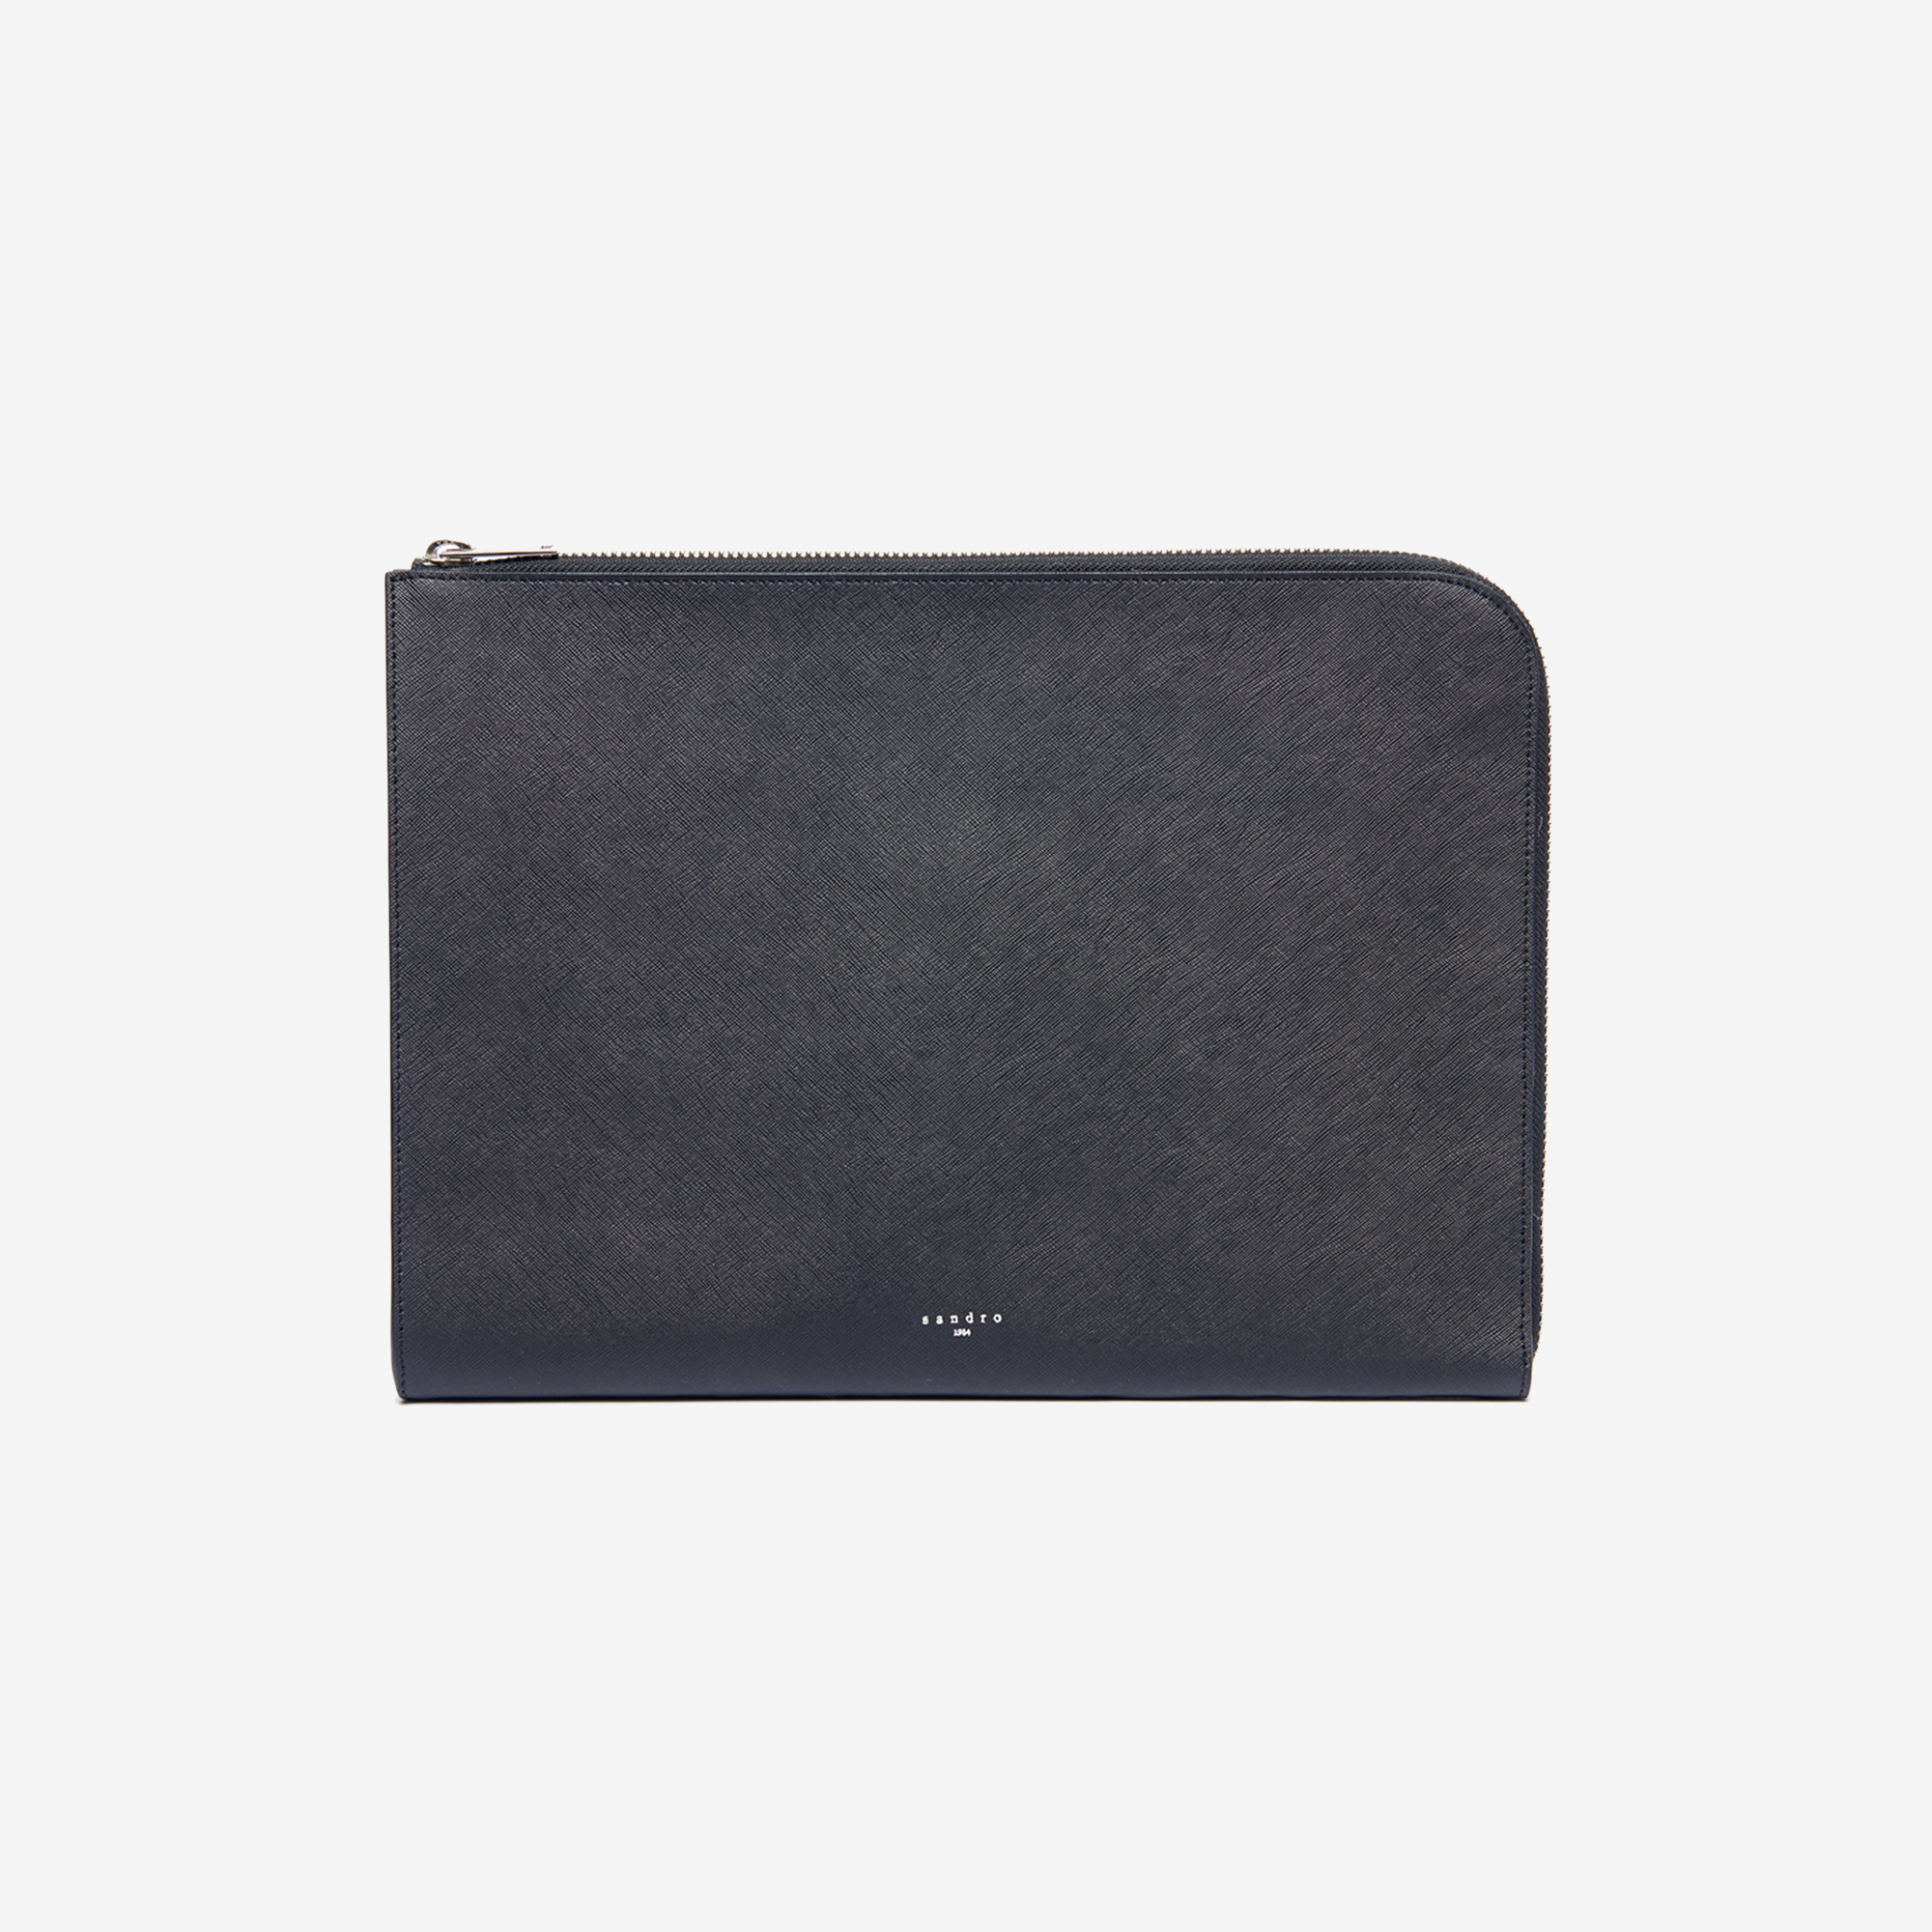 156b872f5c0a Saffiano leather zipped card holder   Bags color Black ...